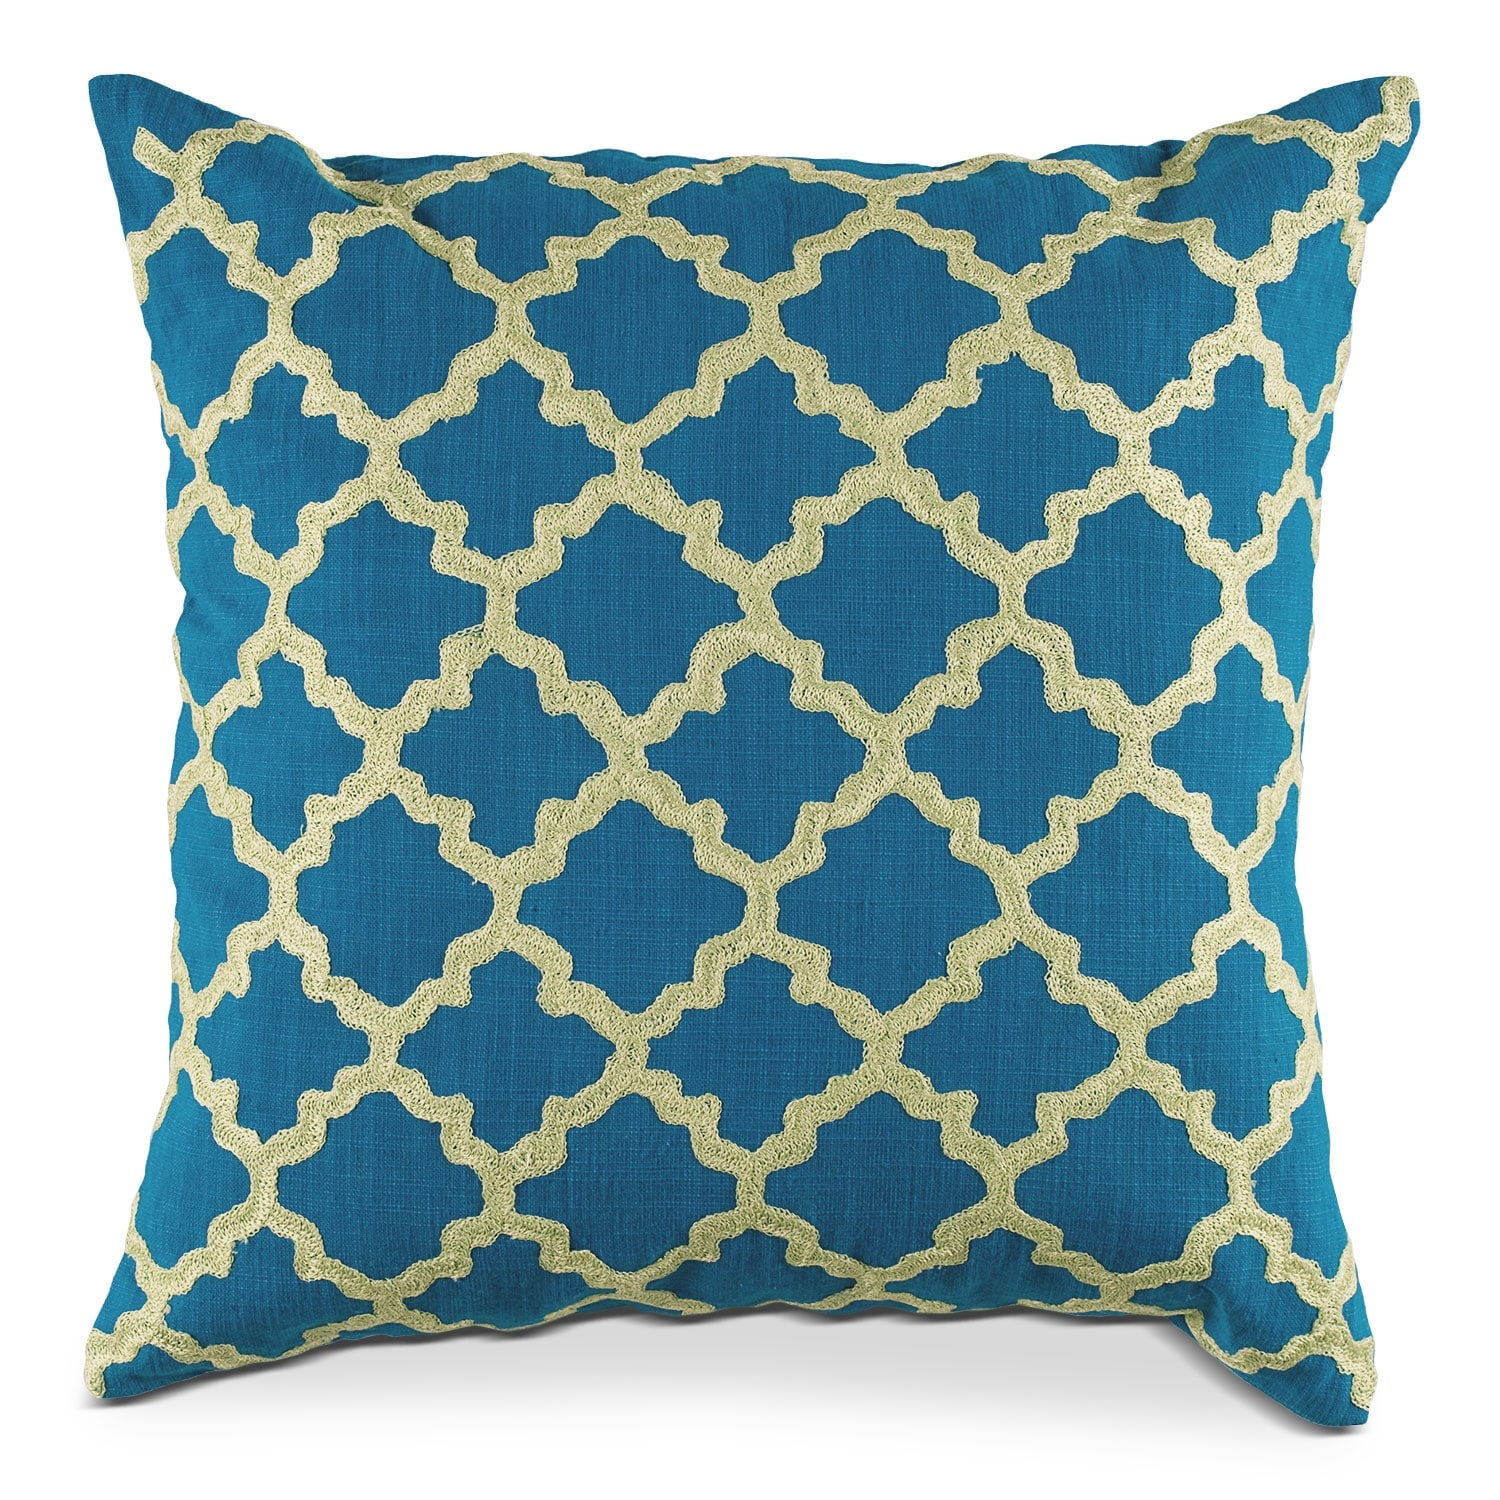 Madaline Marie Blue Decorative Pillow